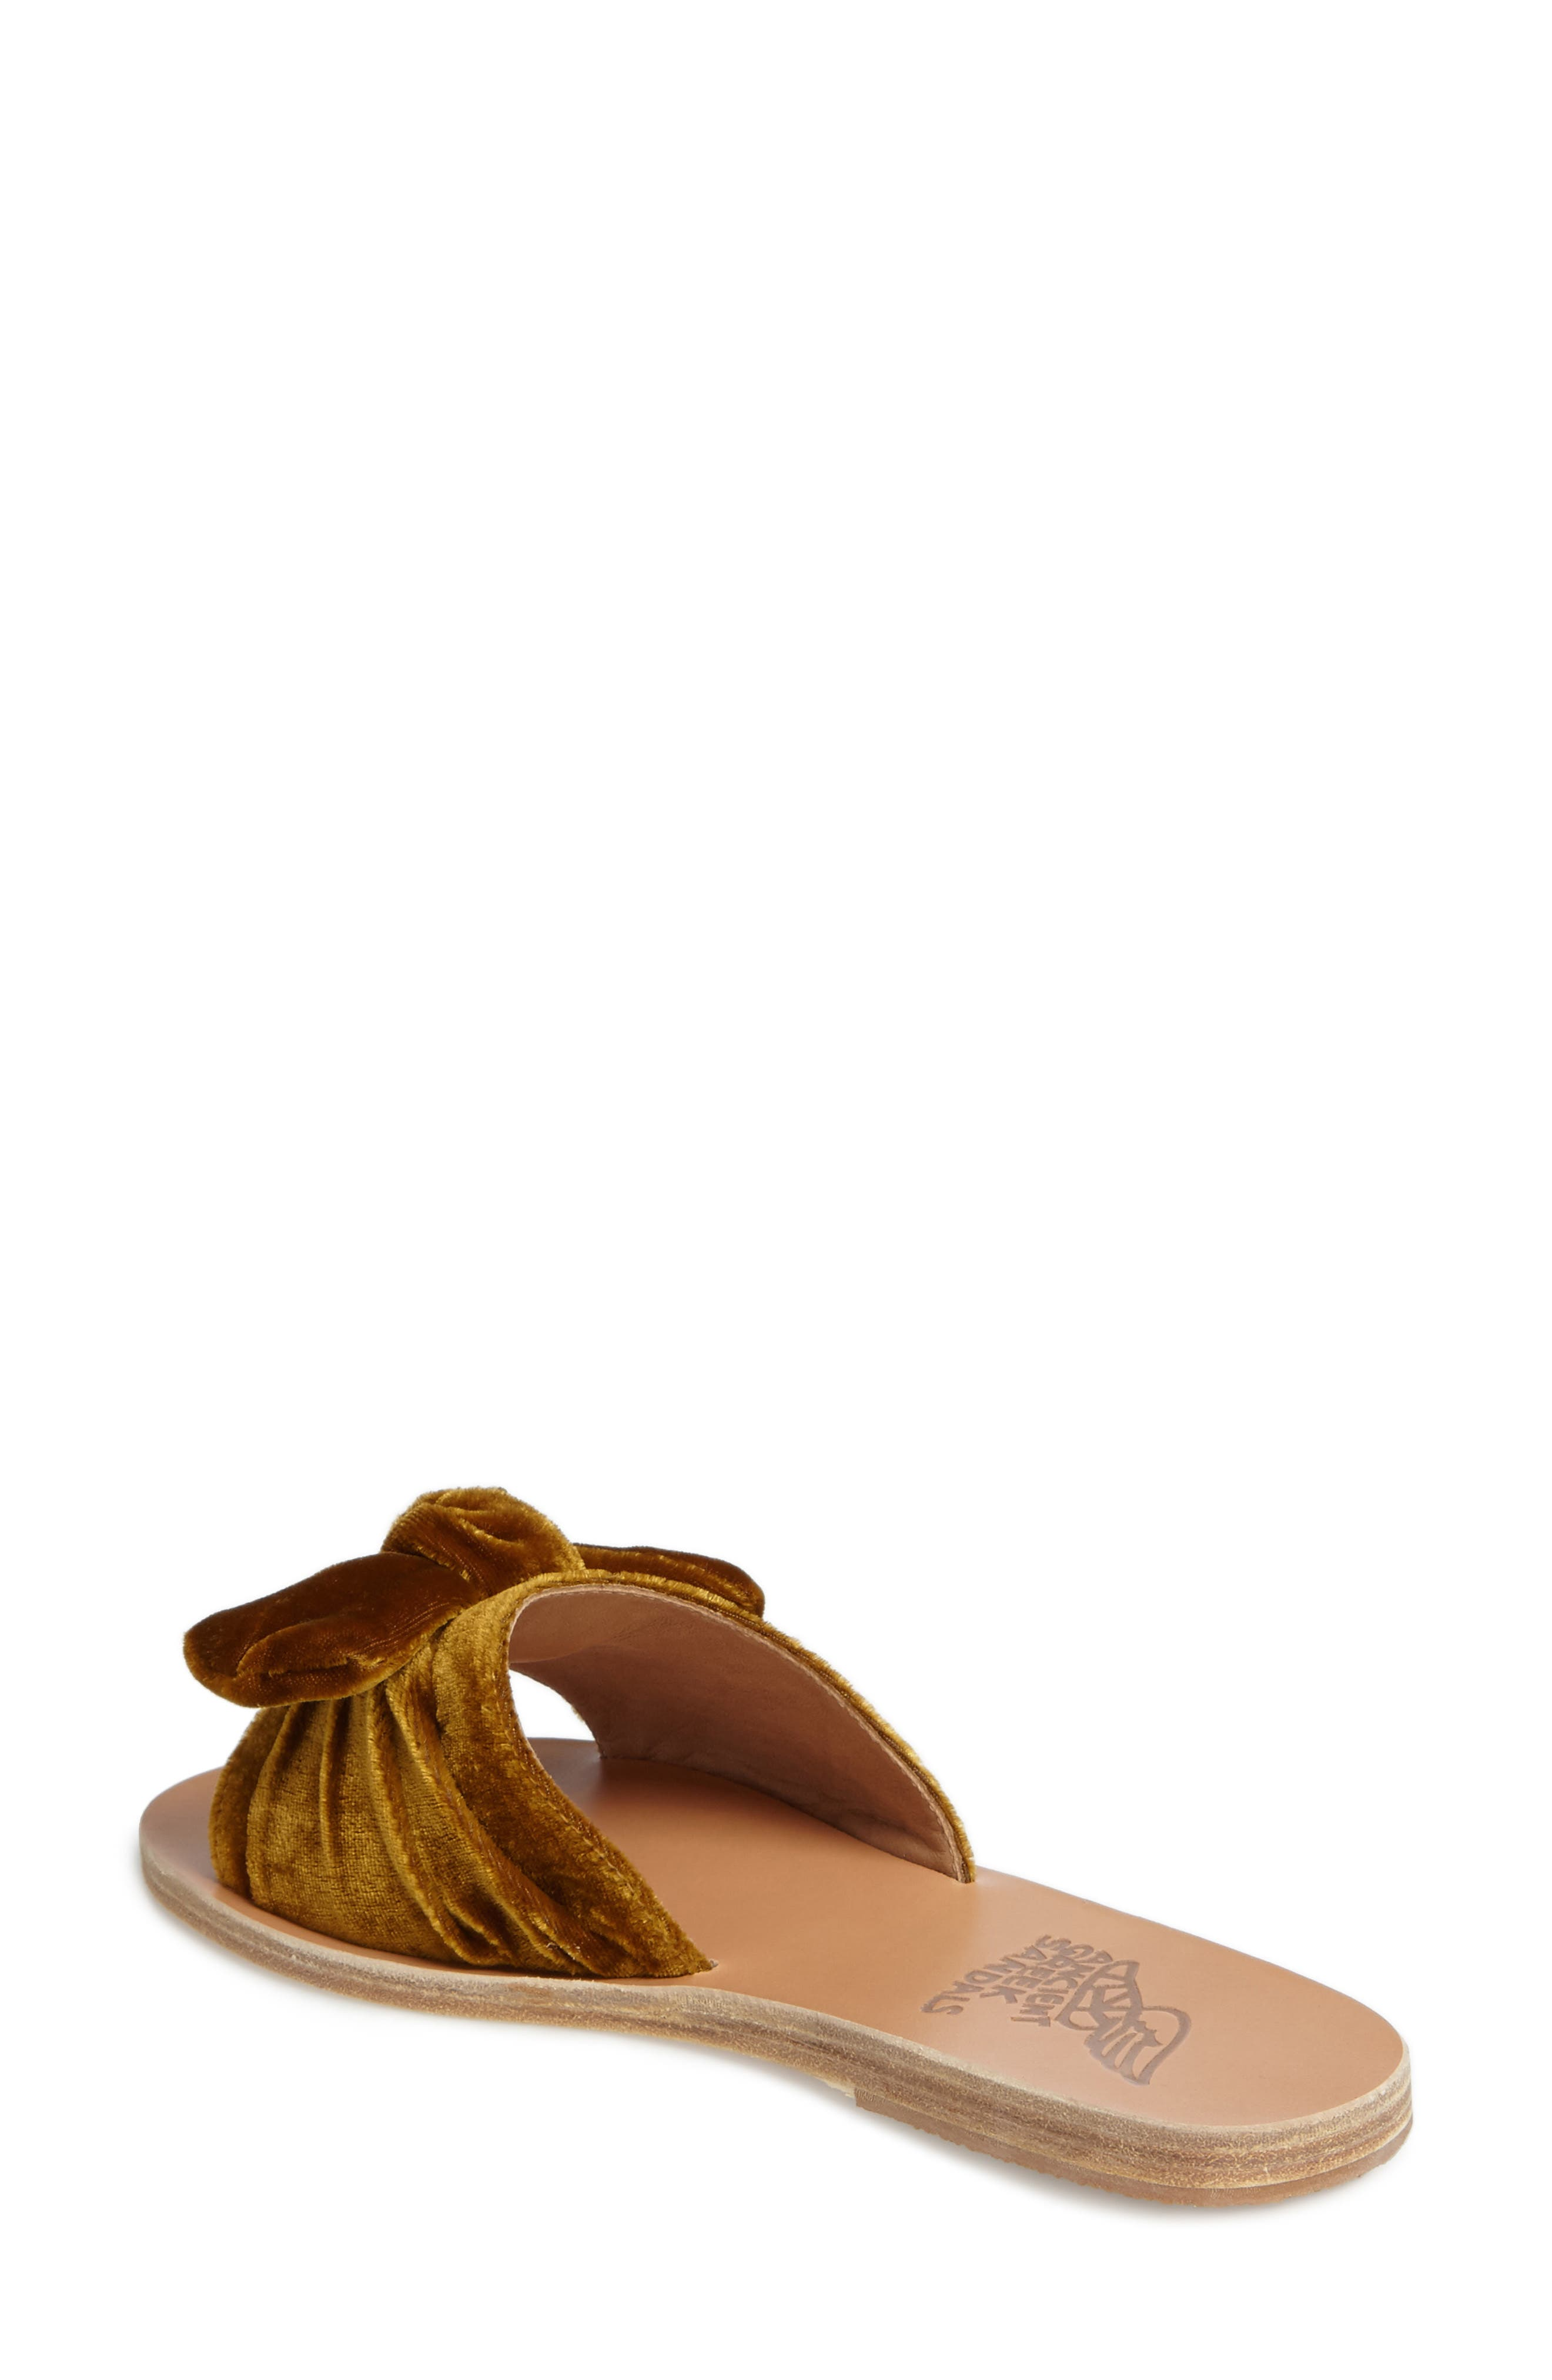 Taygete Bow Slide Sandal,                             Alternate thumbnail 8, color,